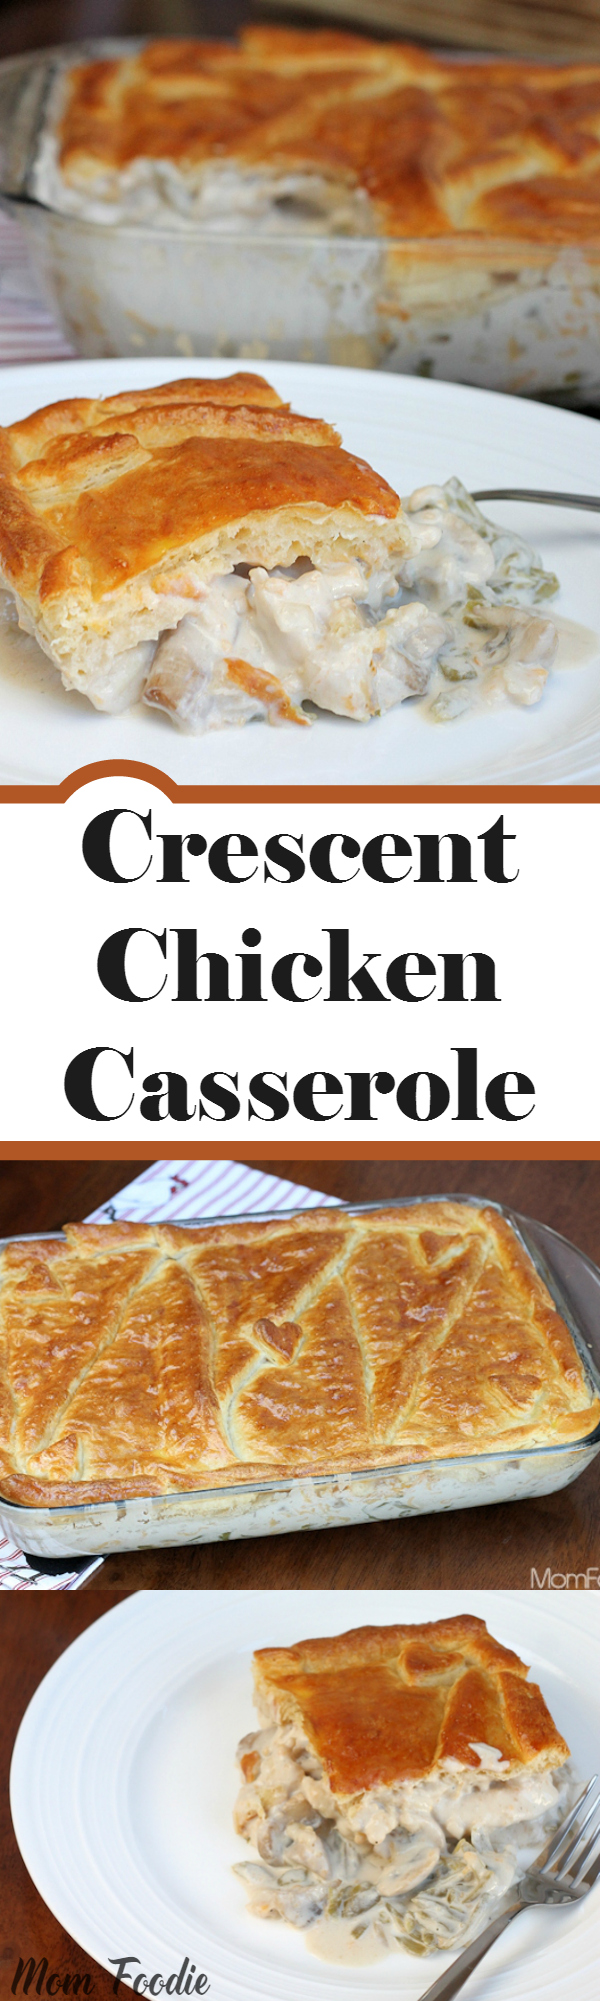 Crescent Chicken Casserole